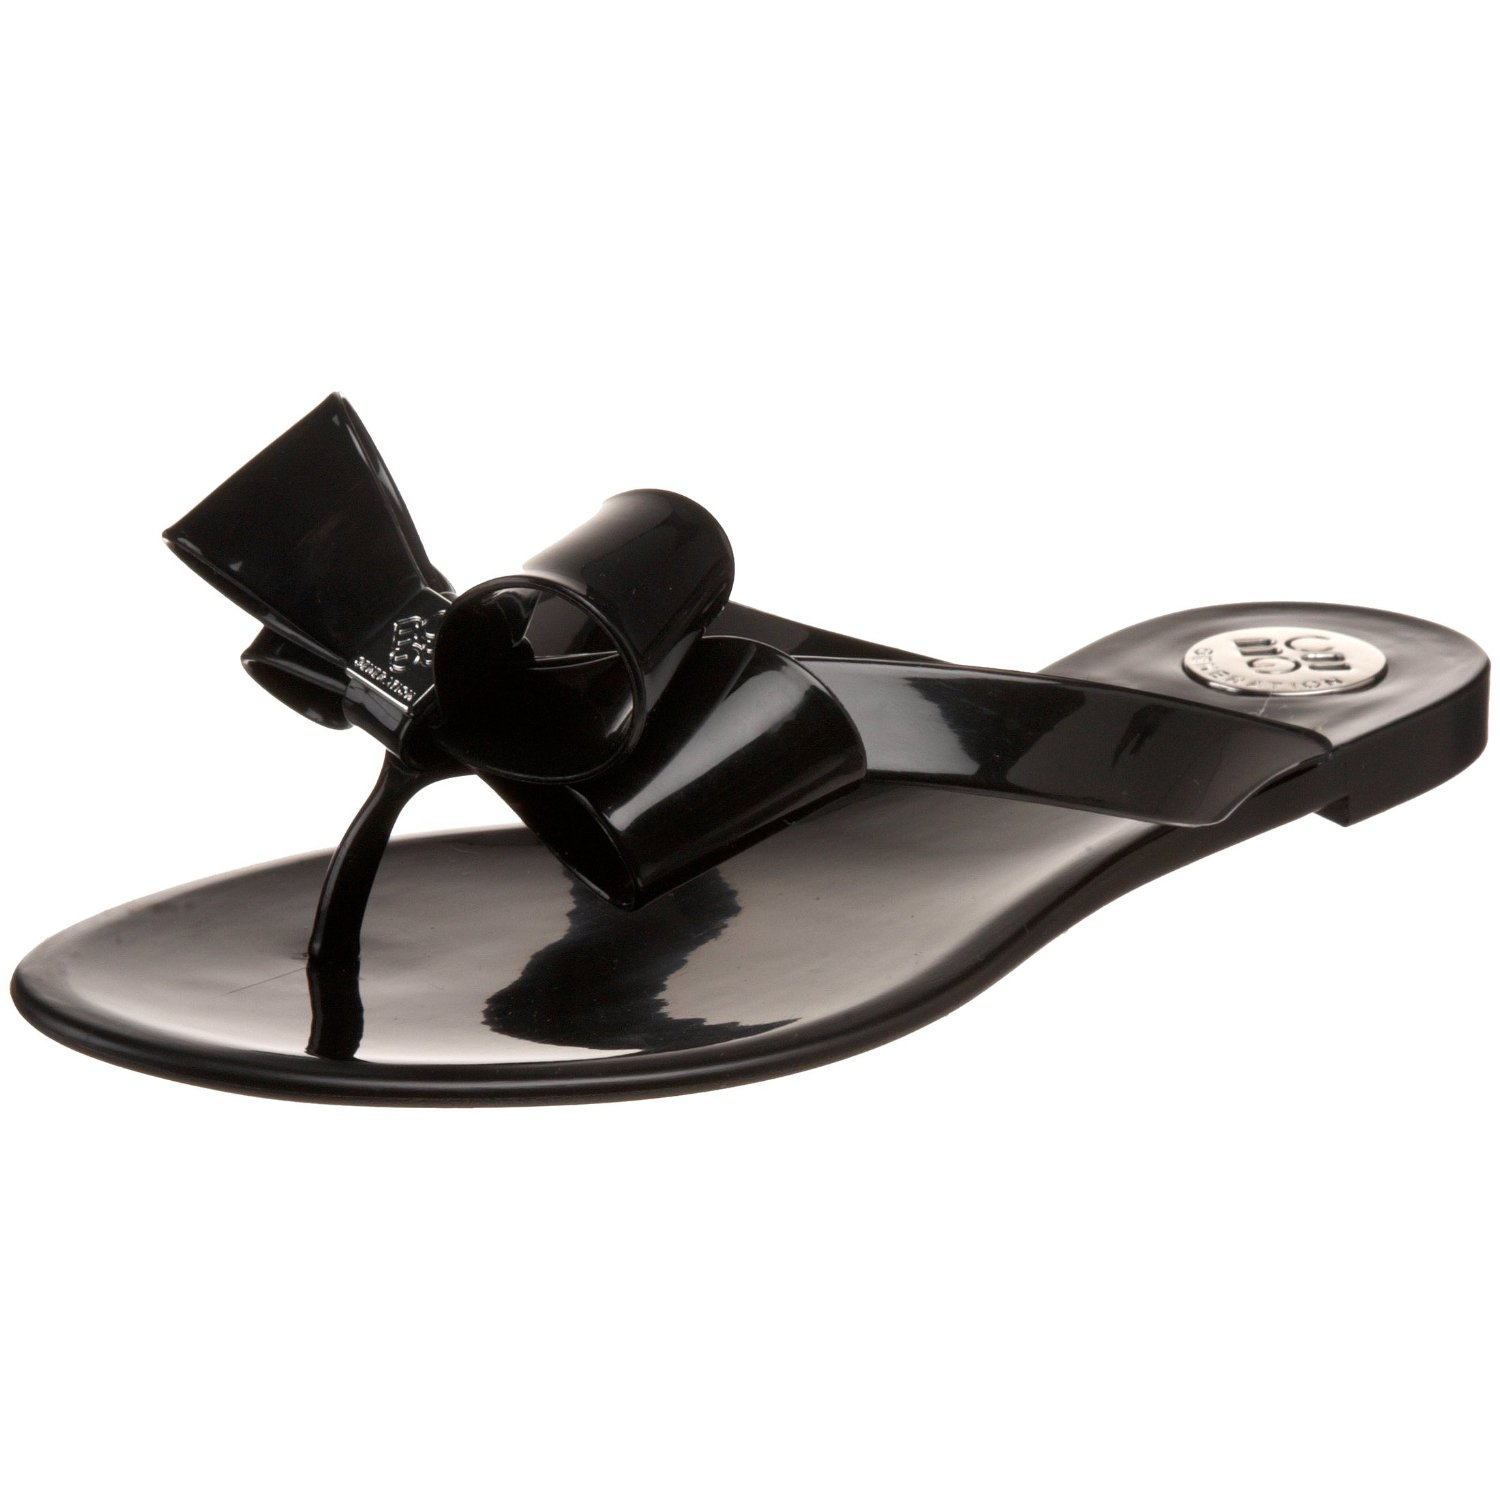 bc4df54f2142 ... the reader who commented about these sandals from Laila Rowe. They  retail for  16 and also come in black. Click here if you re interested in  purchasing.